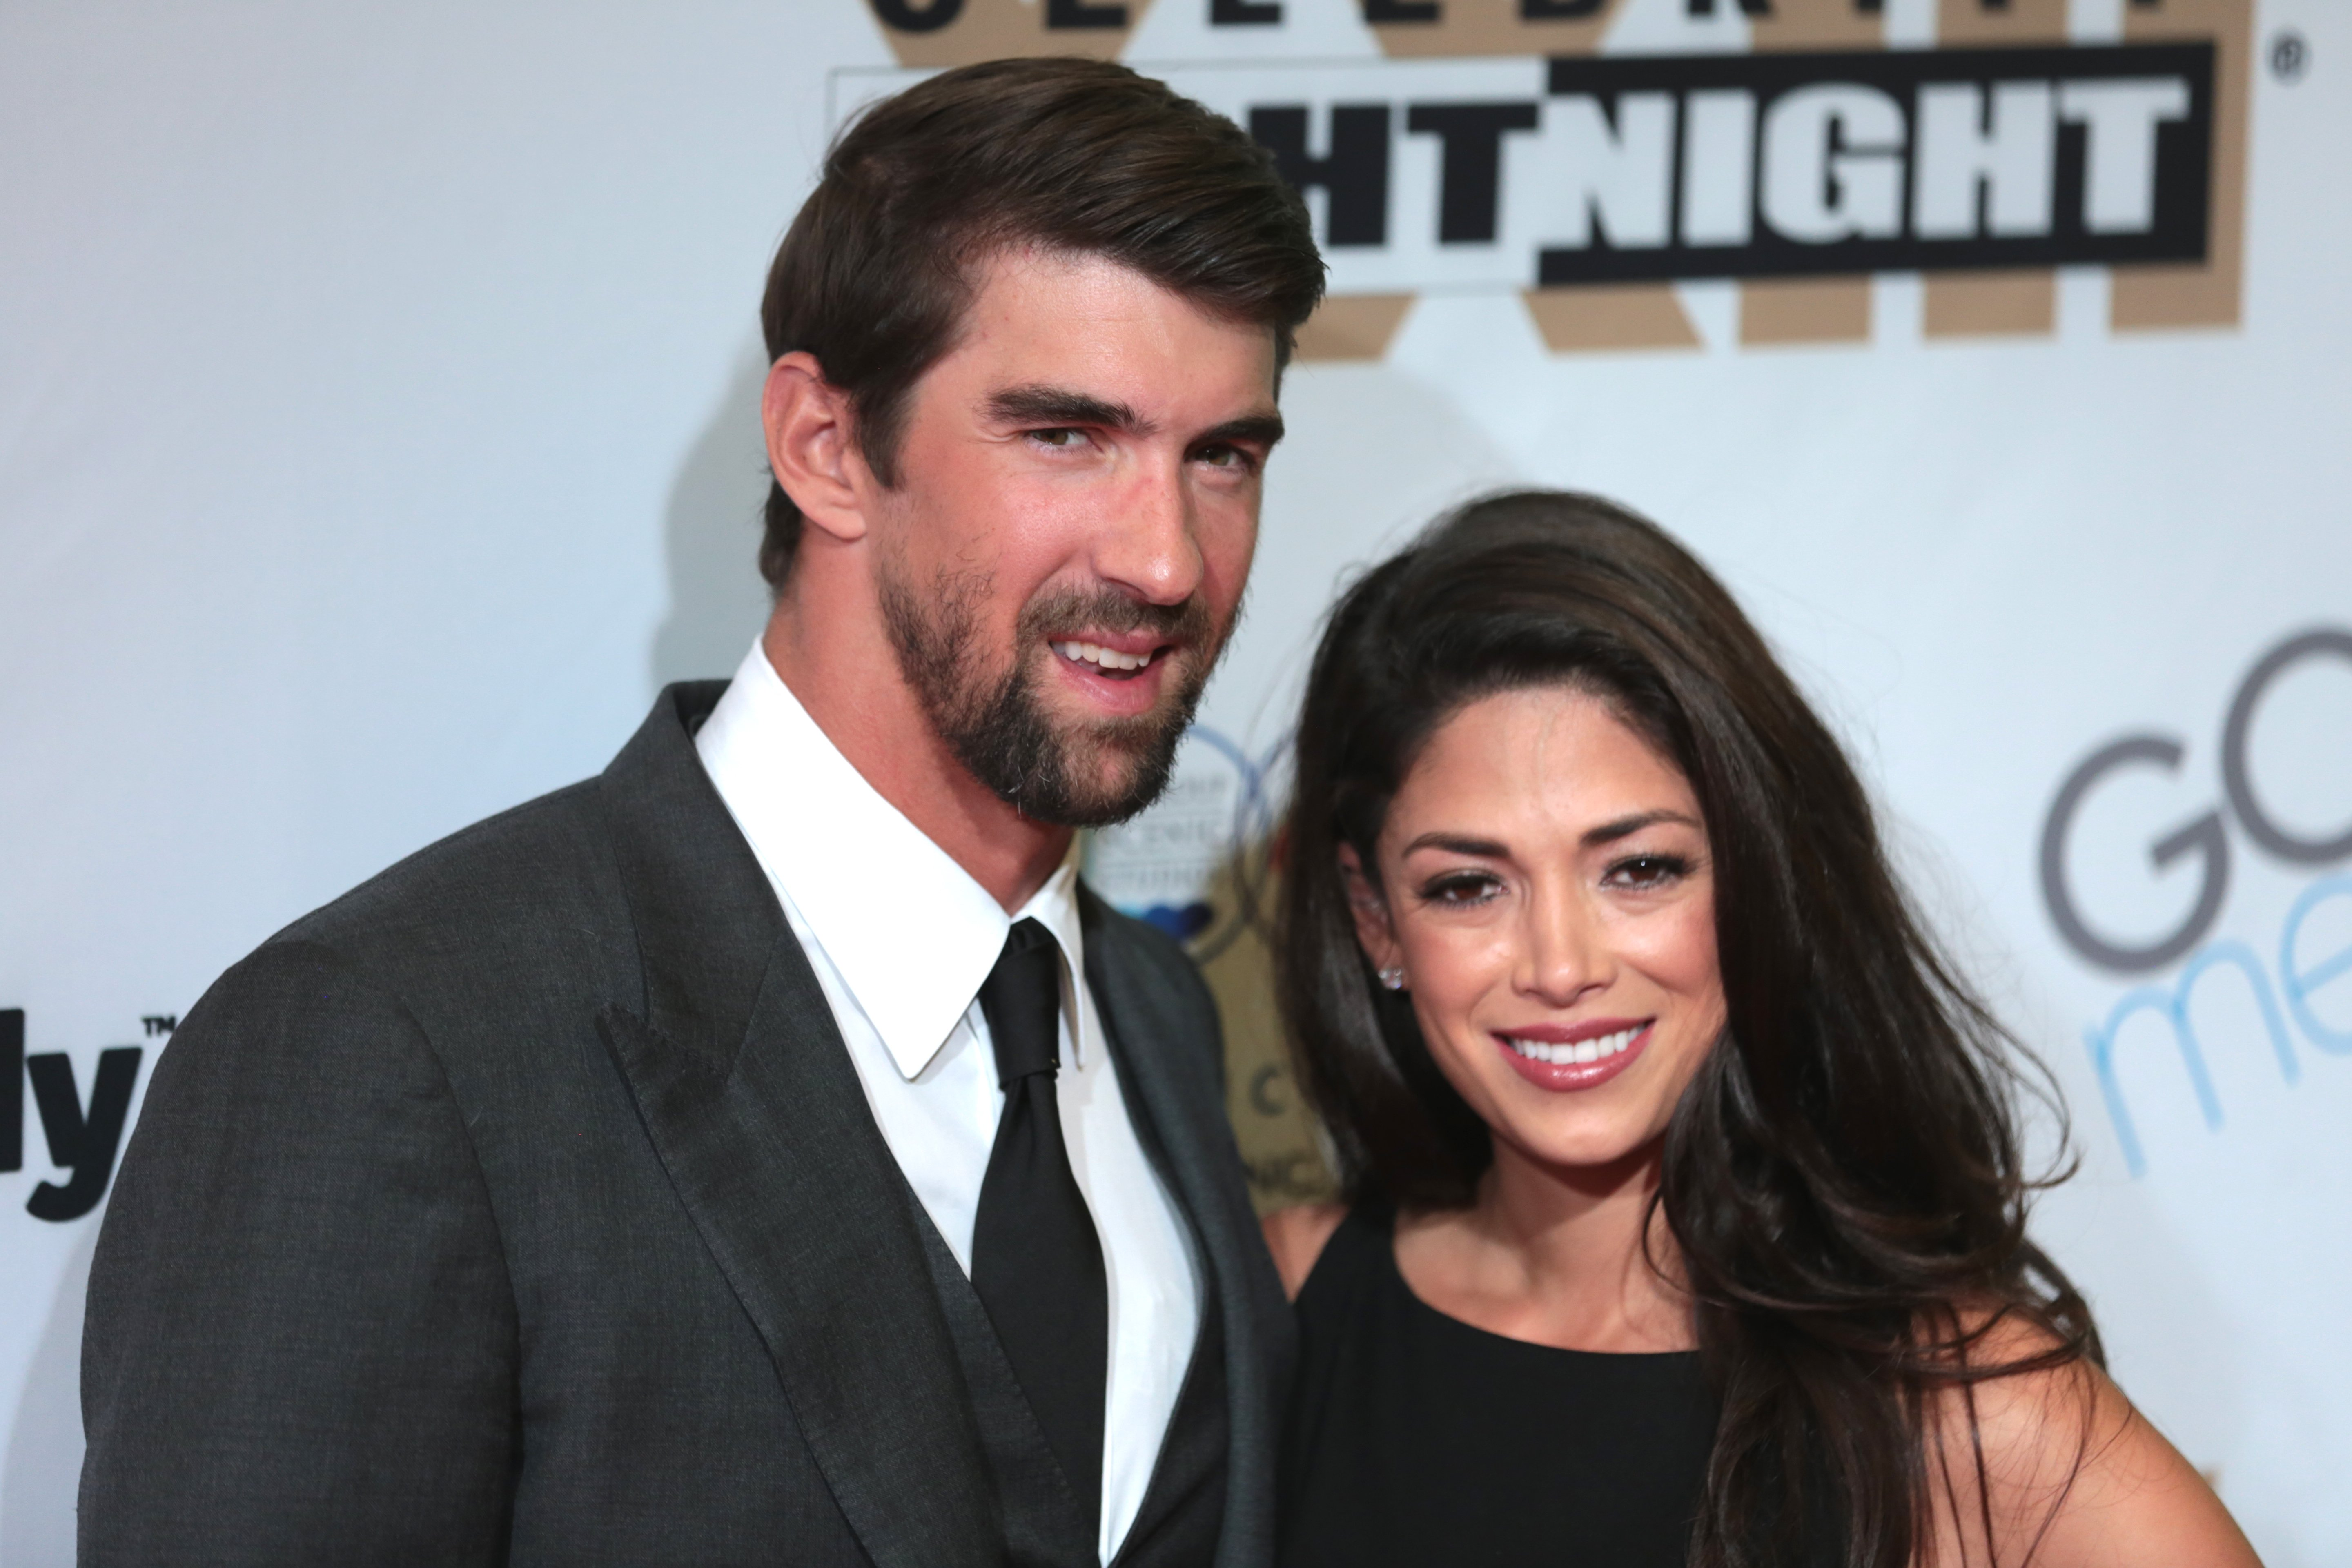 Michael Phelps and Nicole Johnson, 18 March 2017 l Photo: Wikimedia Commons/Creative Commons Attribution-Share Alike 2.0 Generic